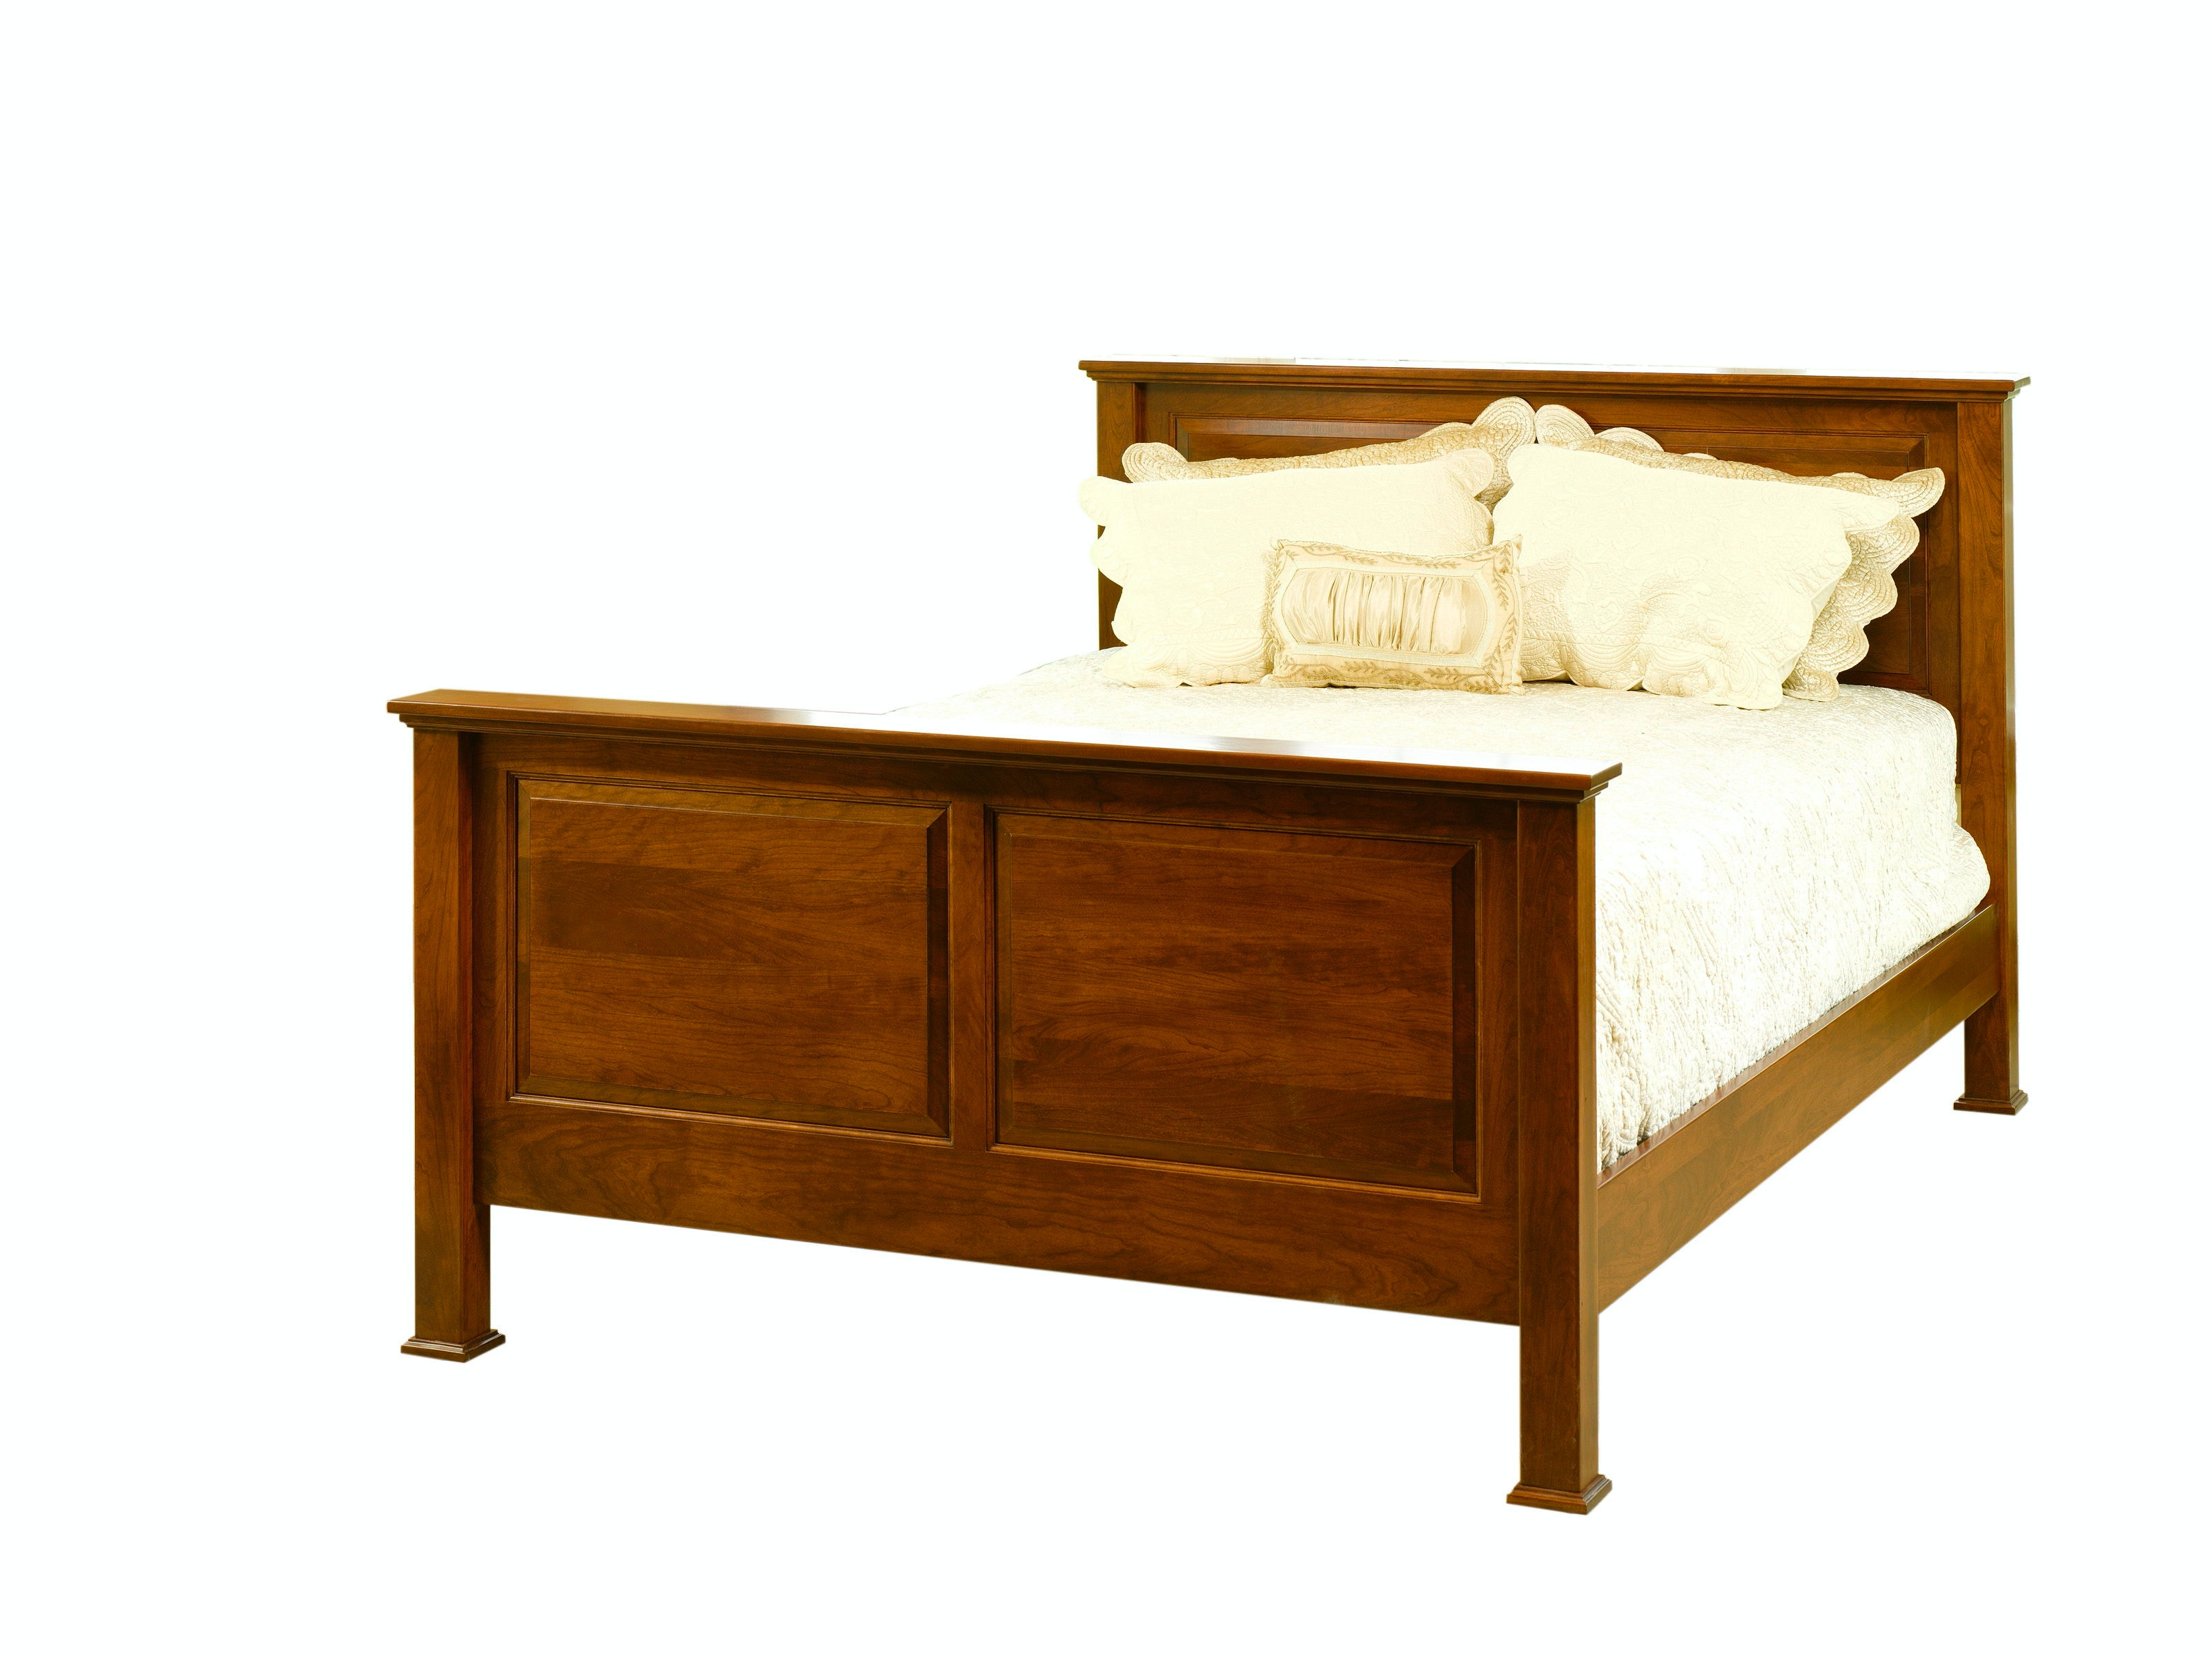 YUTZY WOODWORKING Jamestown Square Shaker Bed 31113